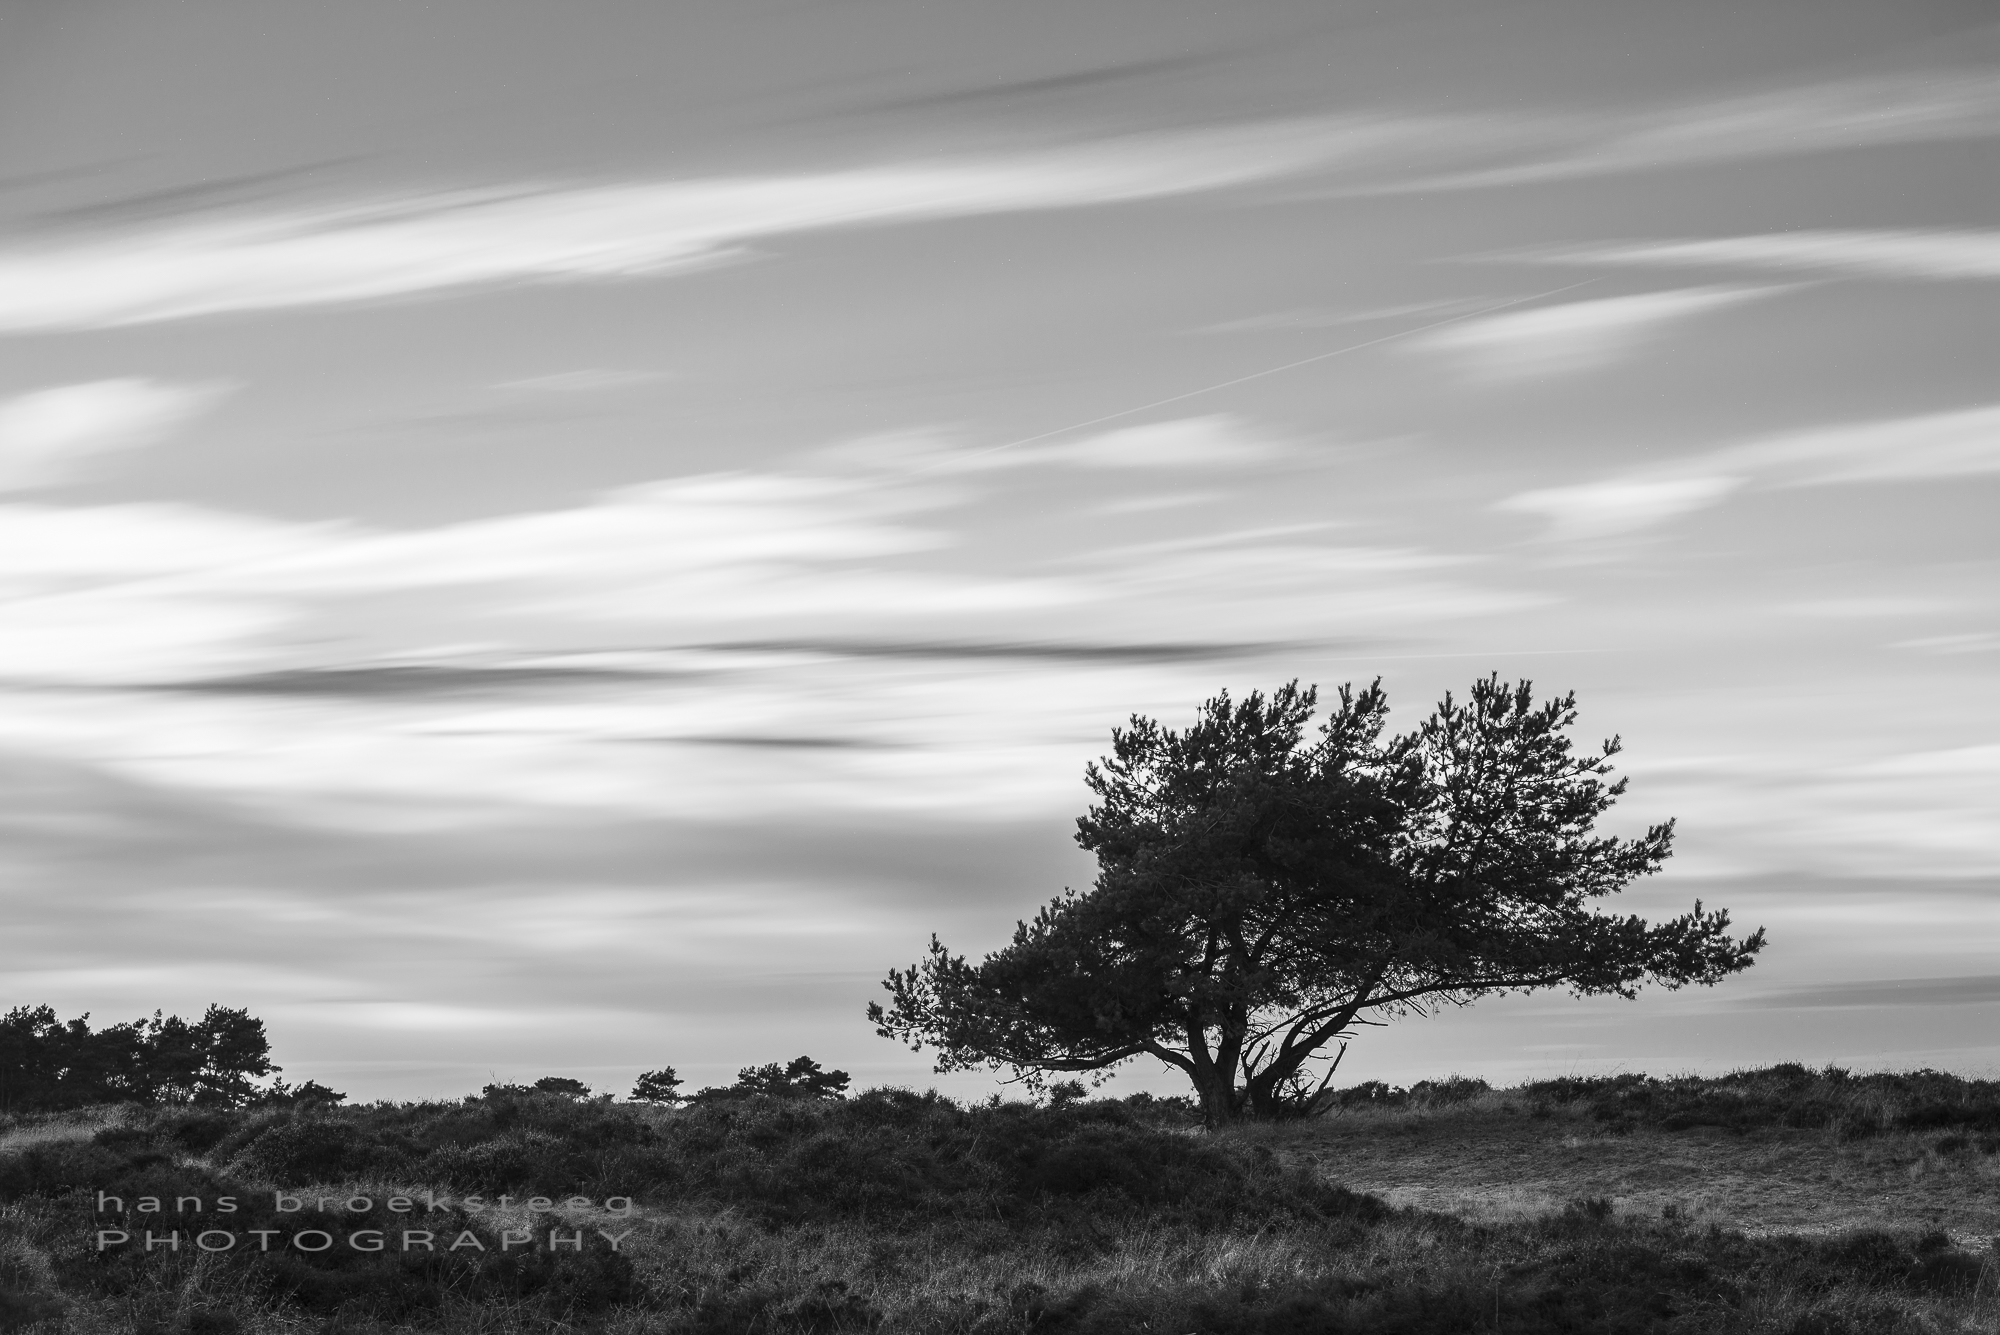 Lone tree with moving clouds in the sky